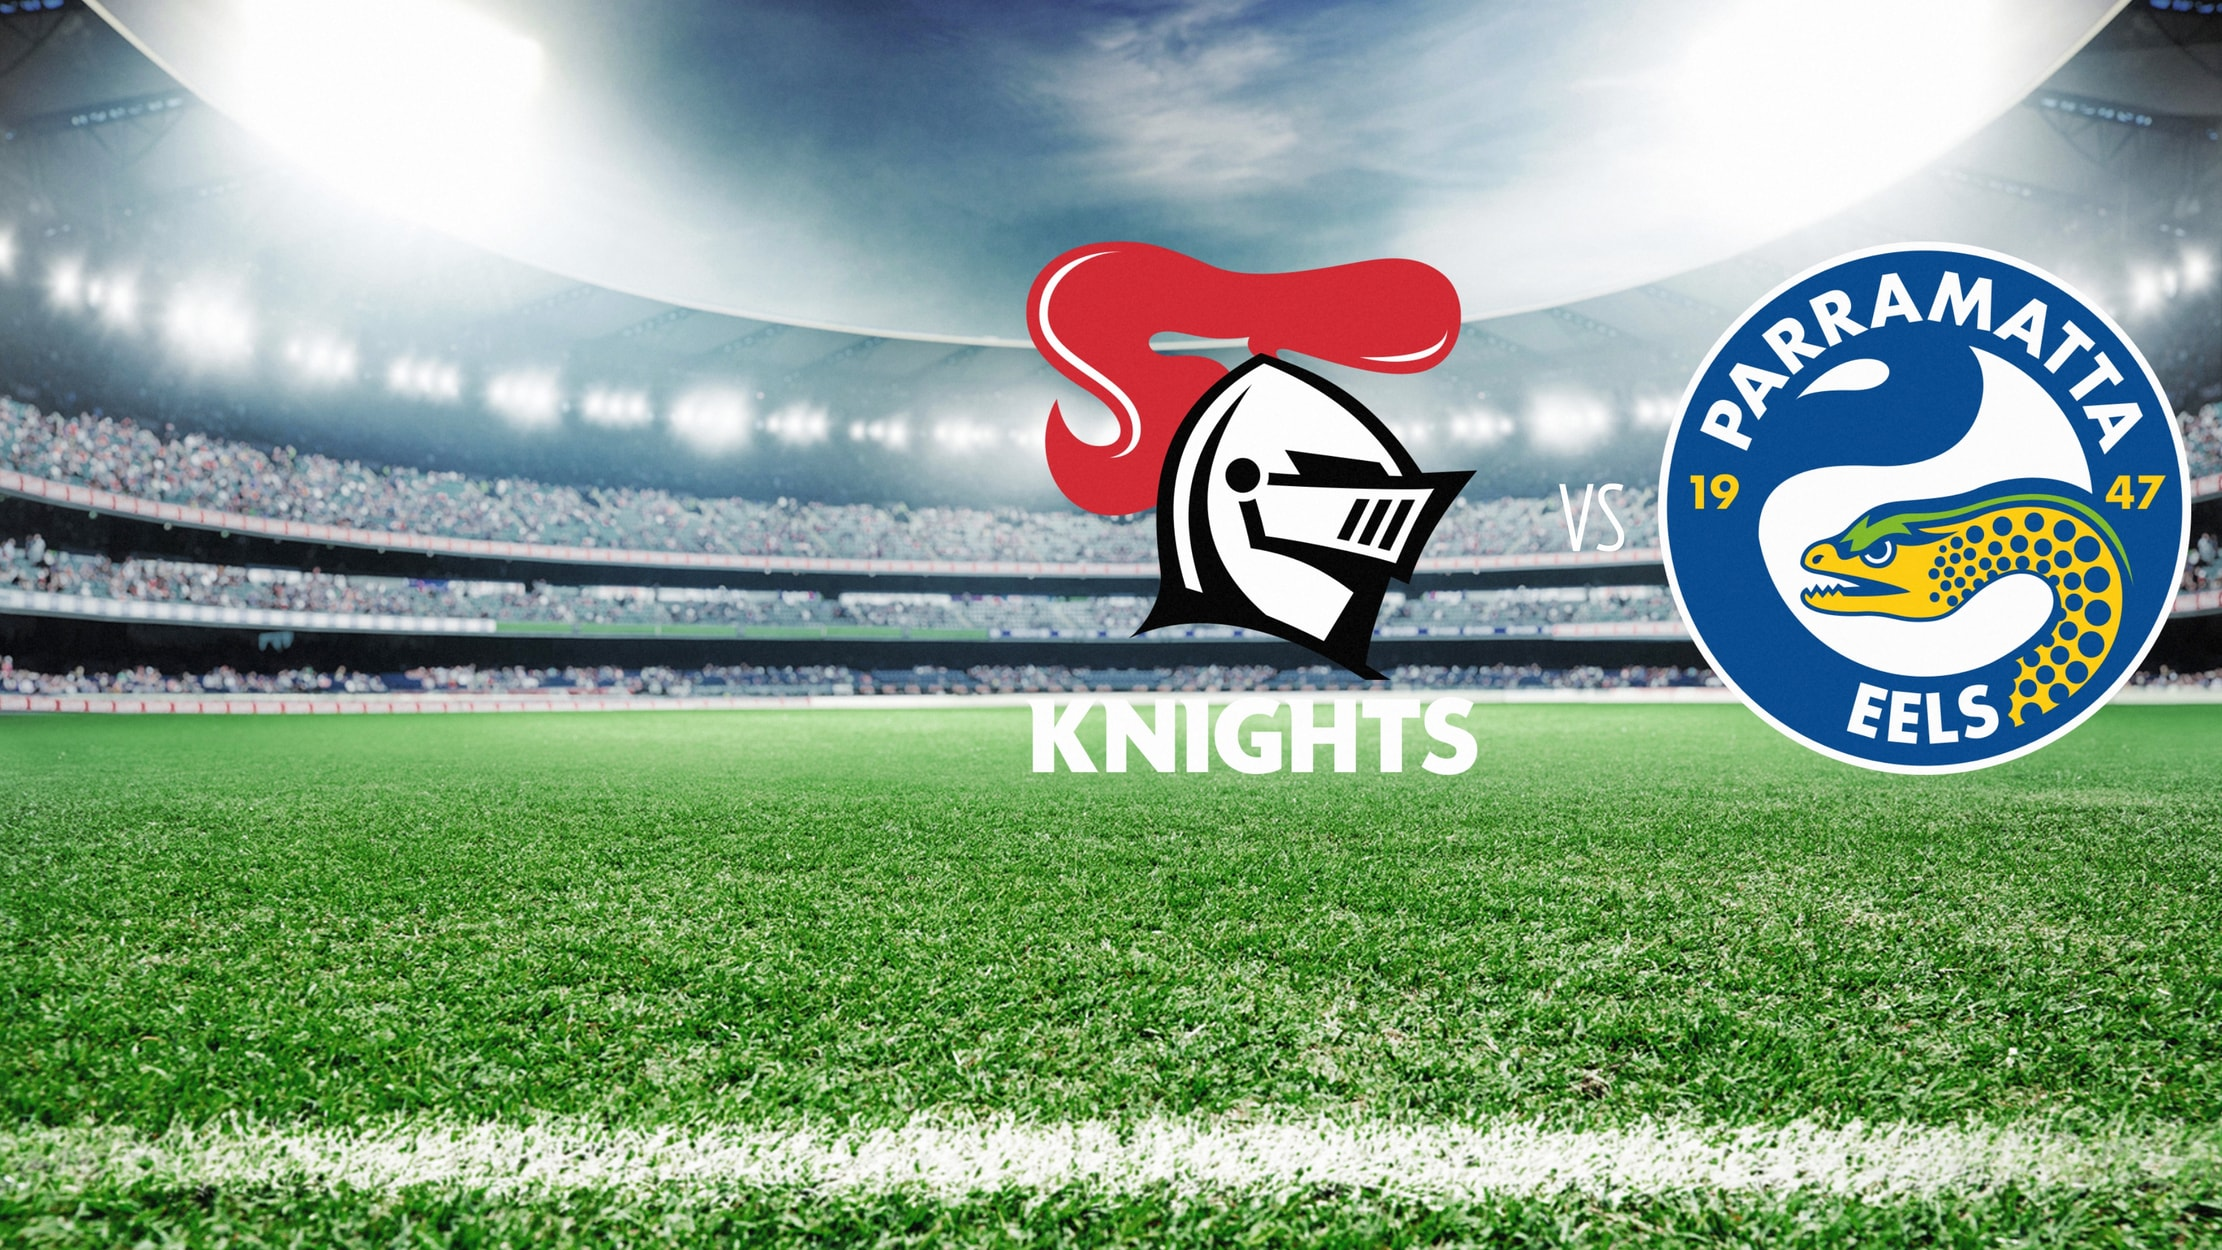 NRL Rugby - Newcastle Knights at Parramatta Eels seriesDetail